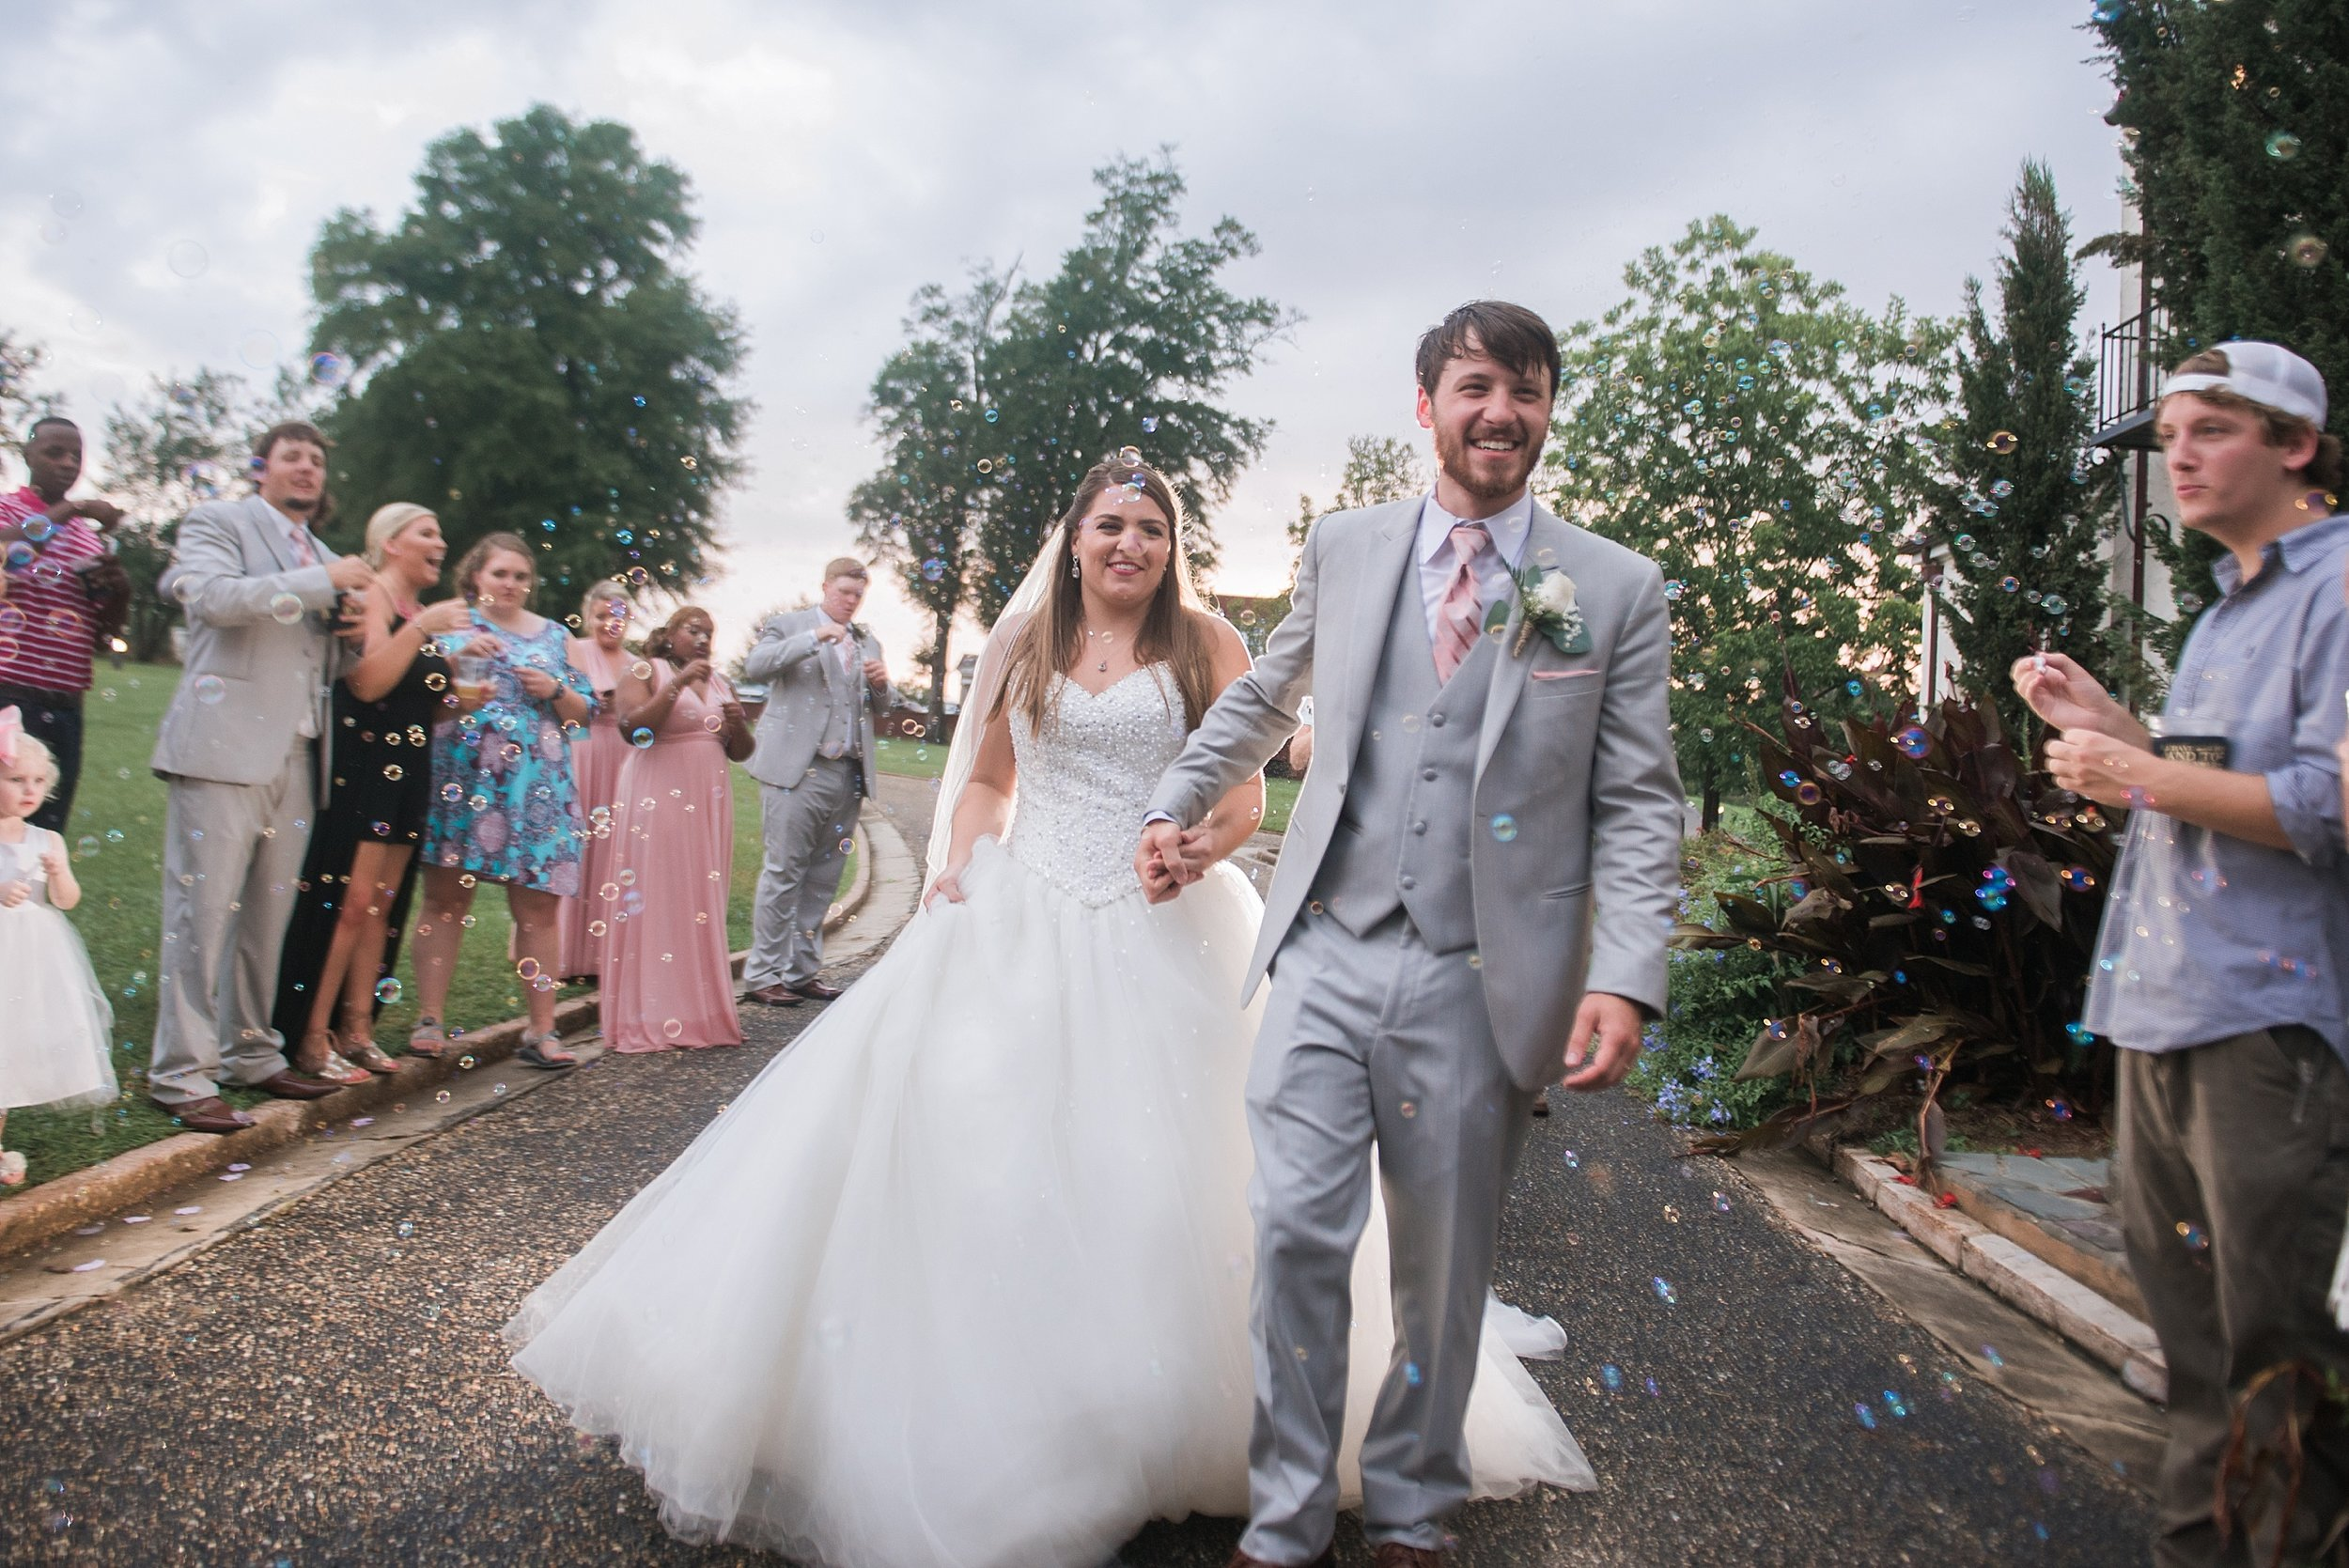 Bride and groom are showered with bubbles as they exit their reception